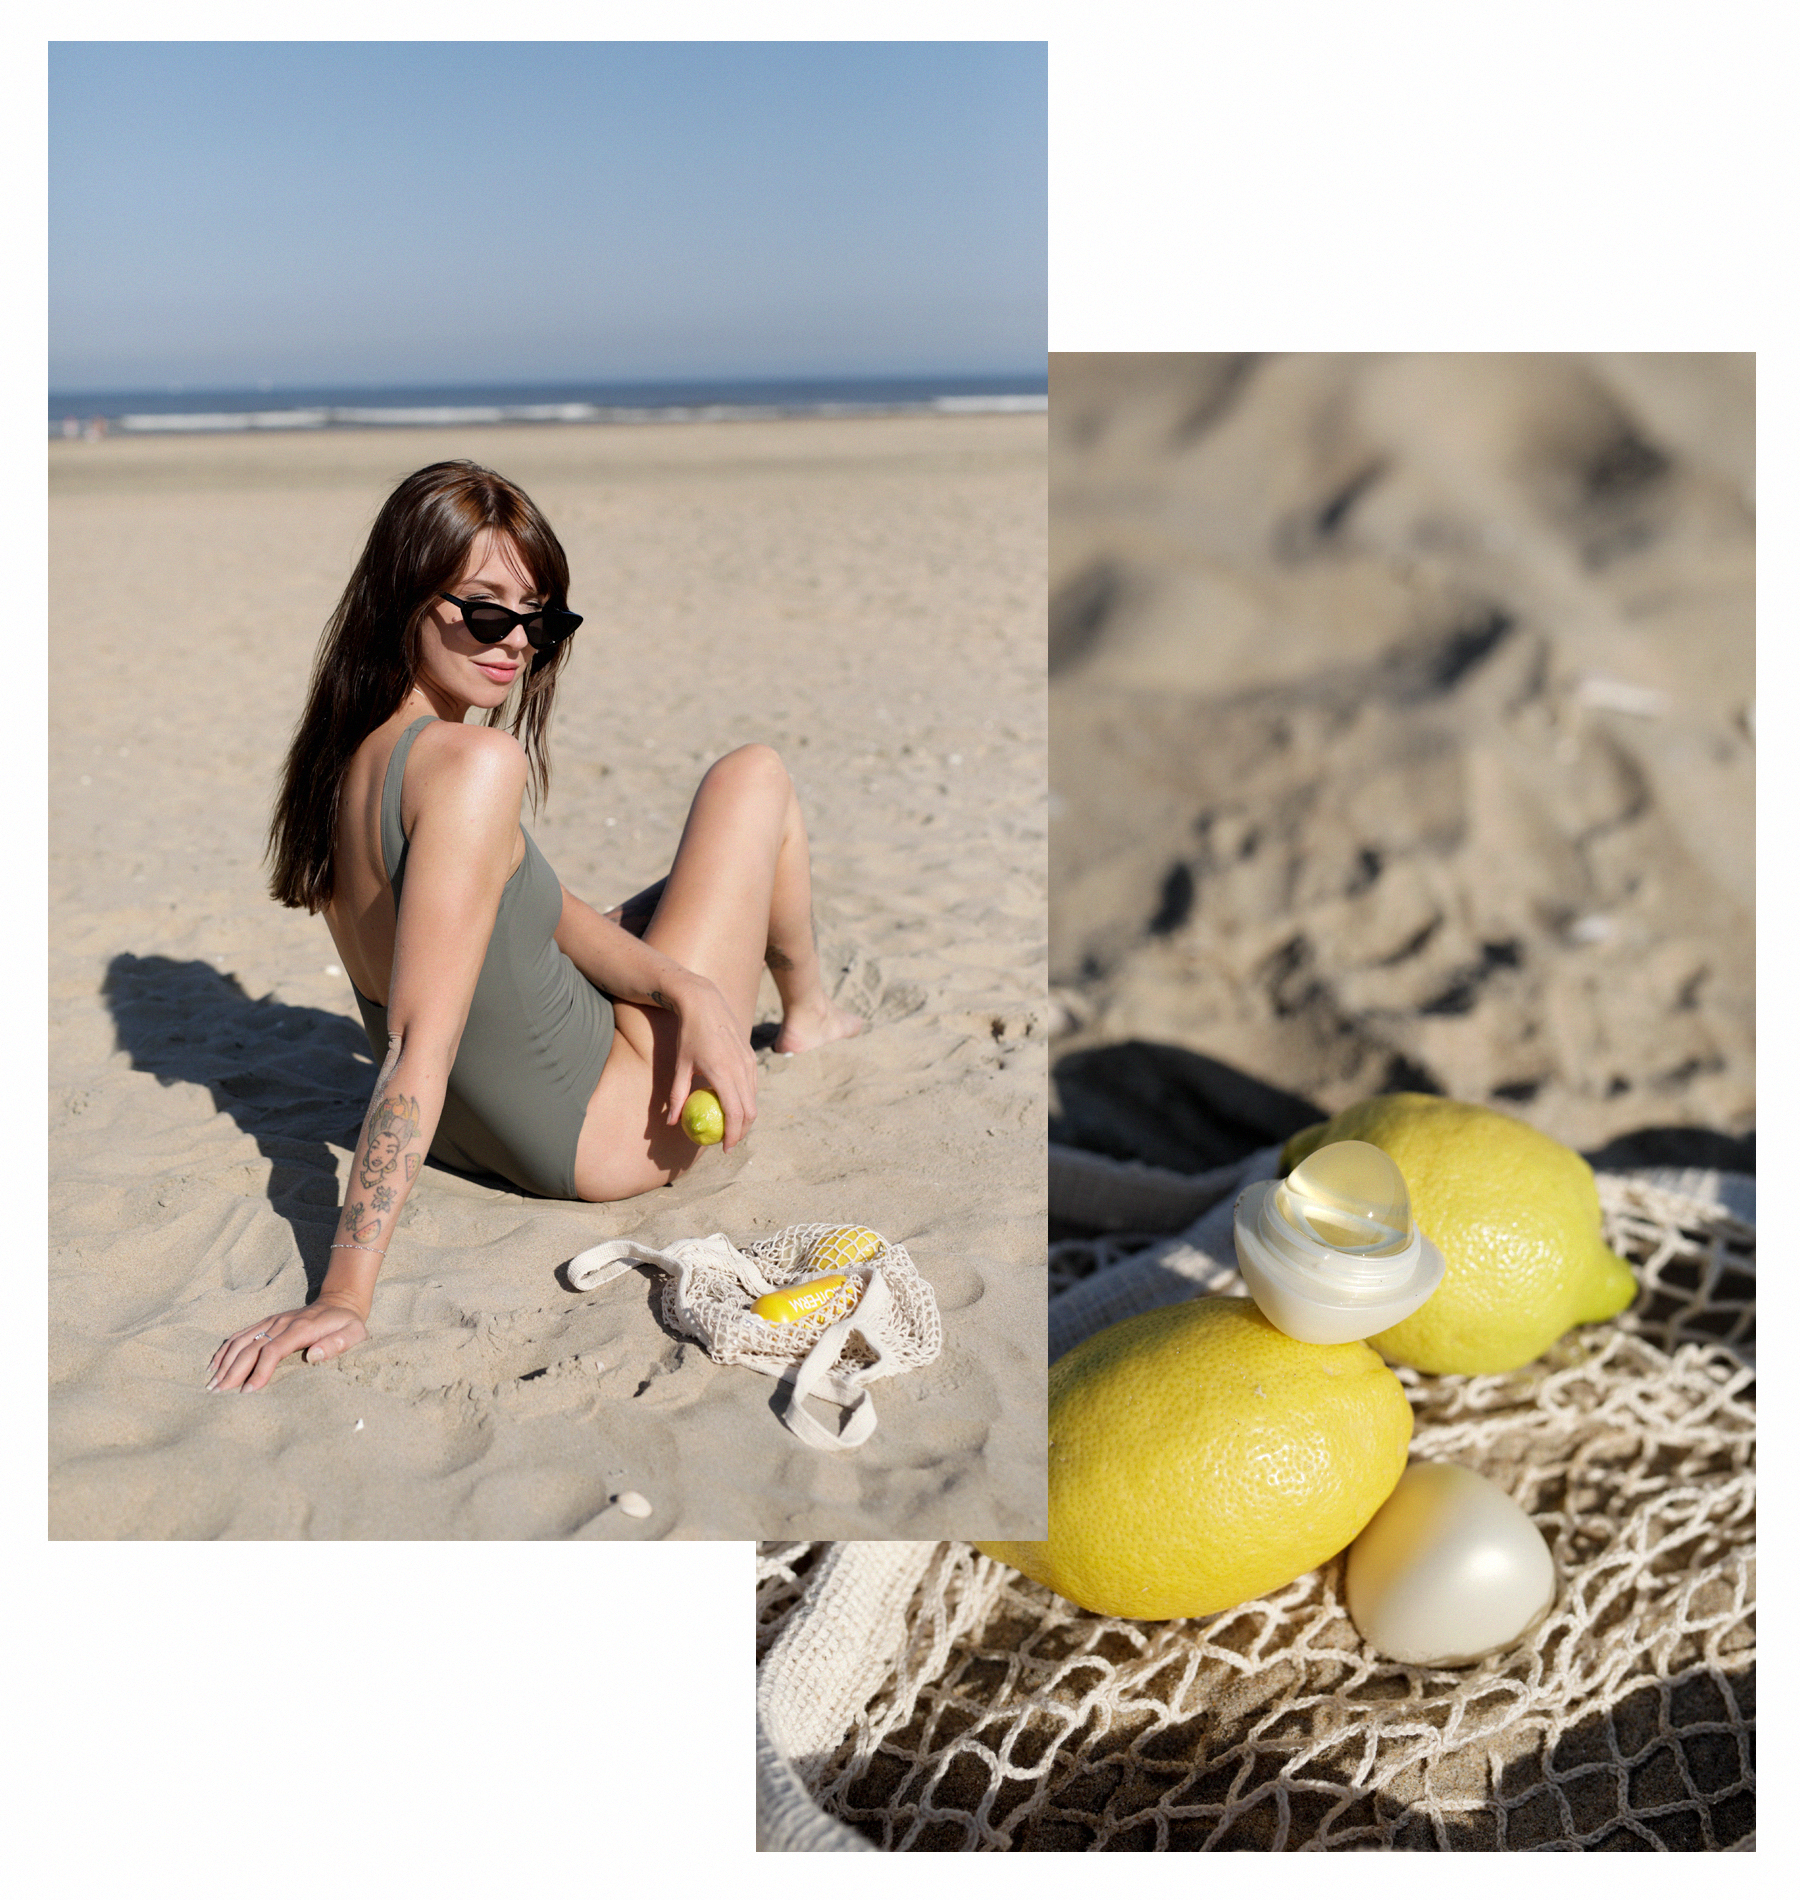 beauty at the beach lemon biotherm sun waterlovers suncare skincare sunblock beachlife beachvacation diptyque skincare eos crystal lip balm bikini swimwear beautyblogger beautybloggers catsanddogsblog ricarda schernus beautyblogger düsseldorf catsdogs 5